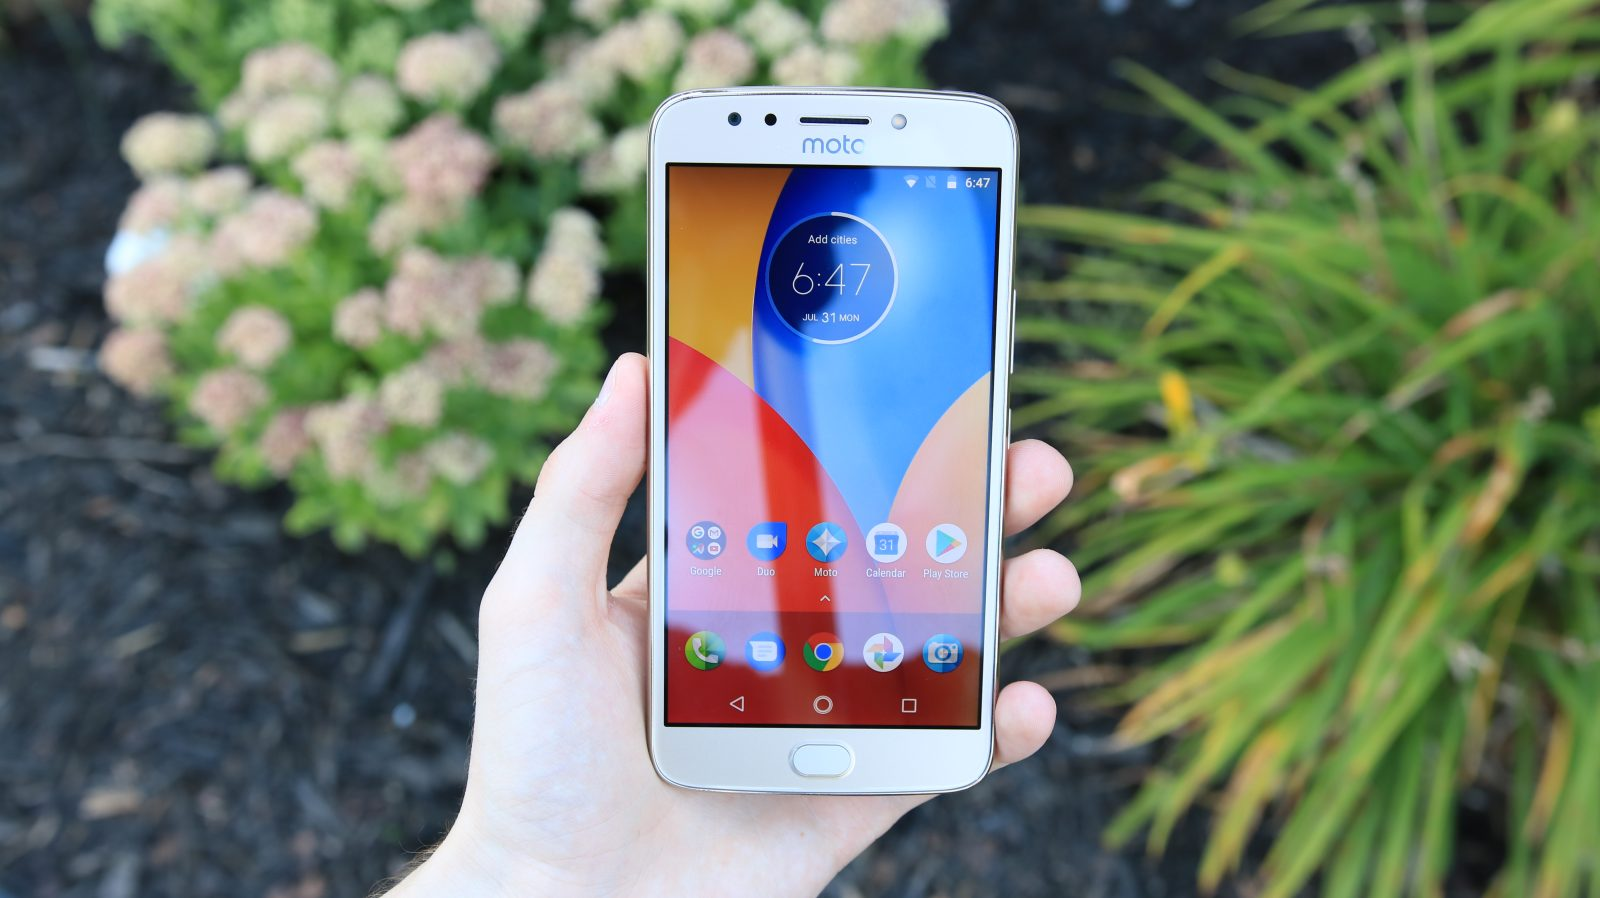 Hands-on: Moto E4 Plus has 5 big differences compared to the